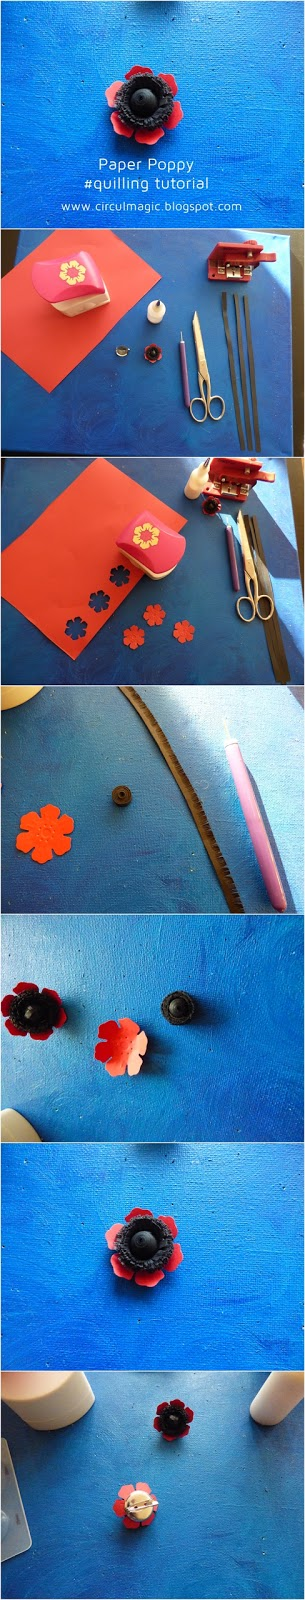 Tutorial Circul Magic Quilling: Floare de Mac din Hartie